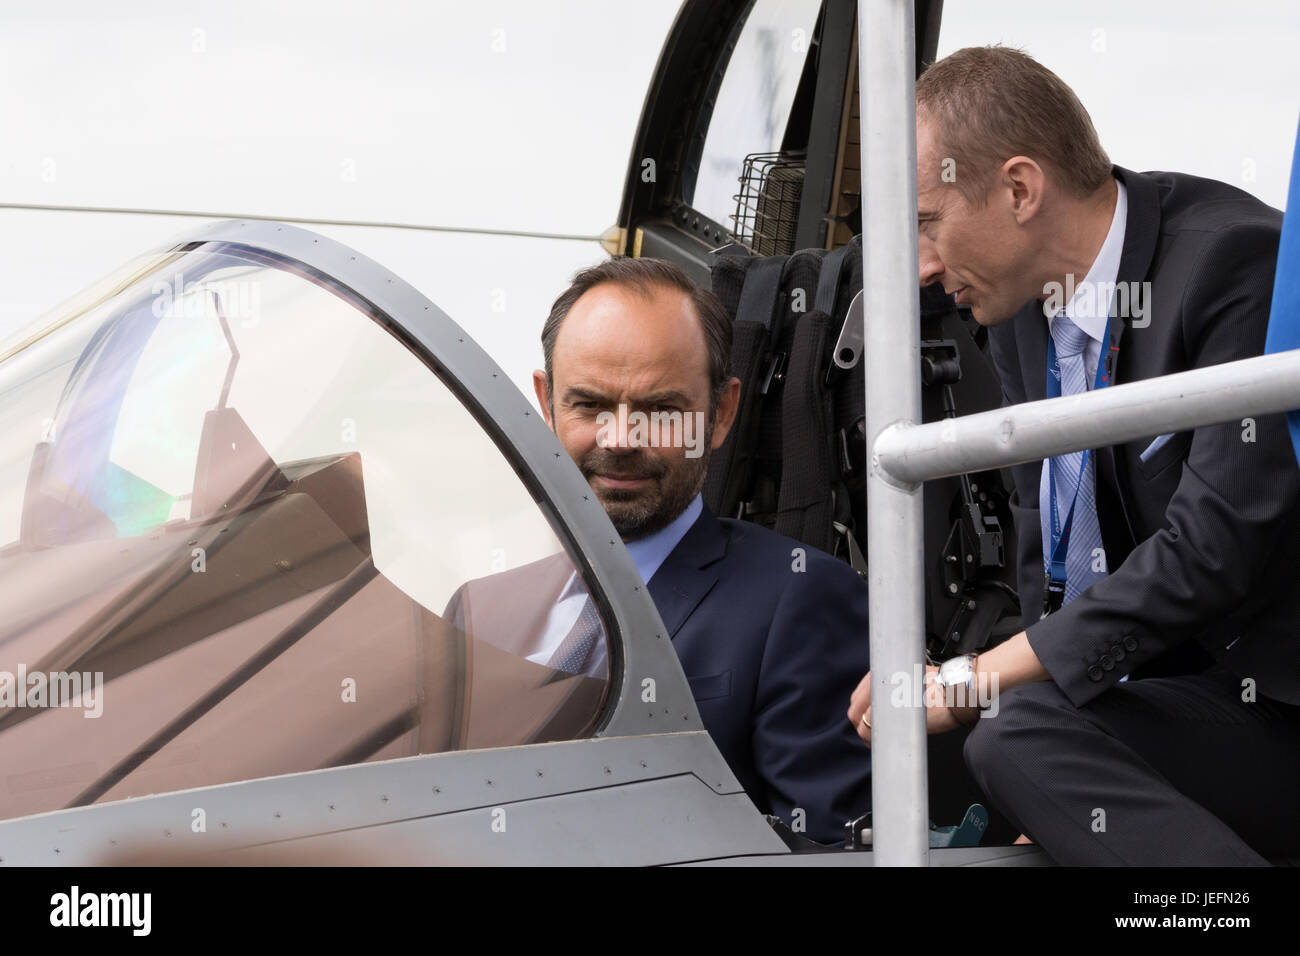 PARIS, FRANCE - JUN 23, 2017: French Prime Minister Edouard Philippe in the cockpit of a Rafale fighter jet during - Stock Image